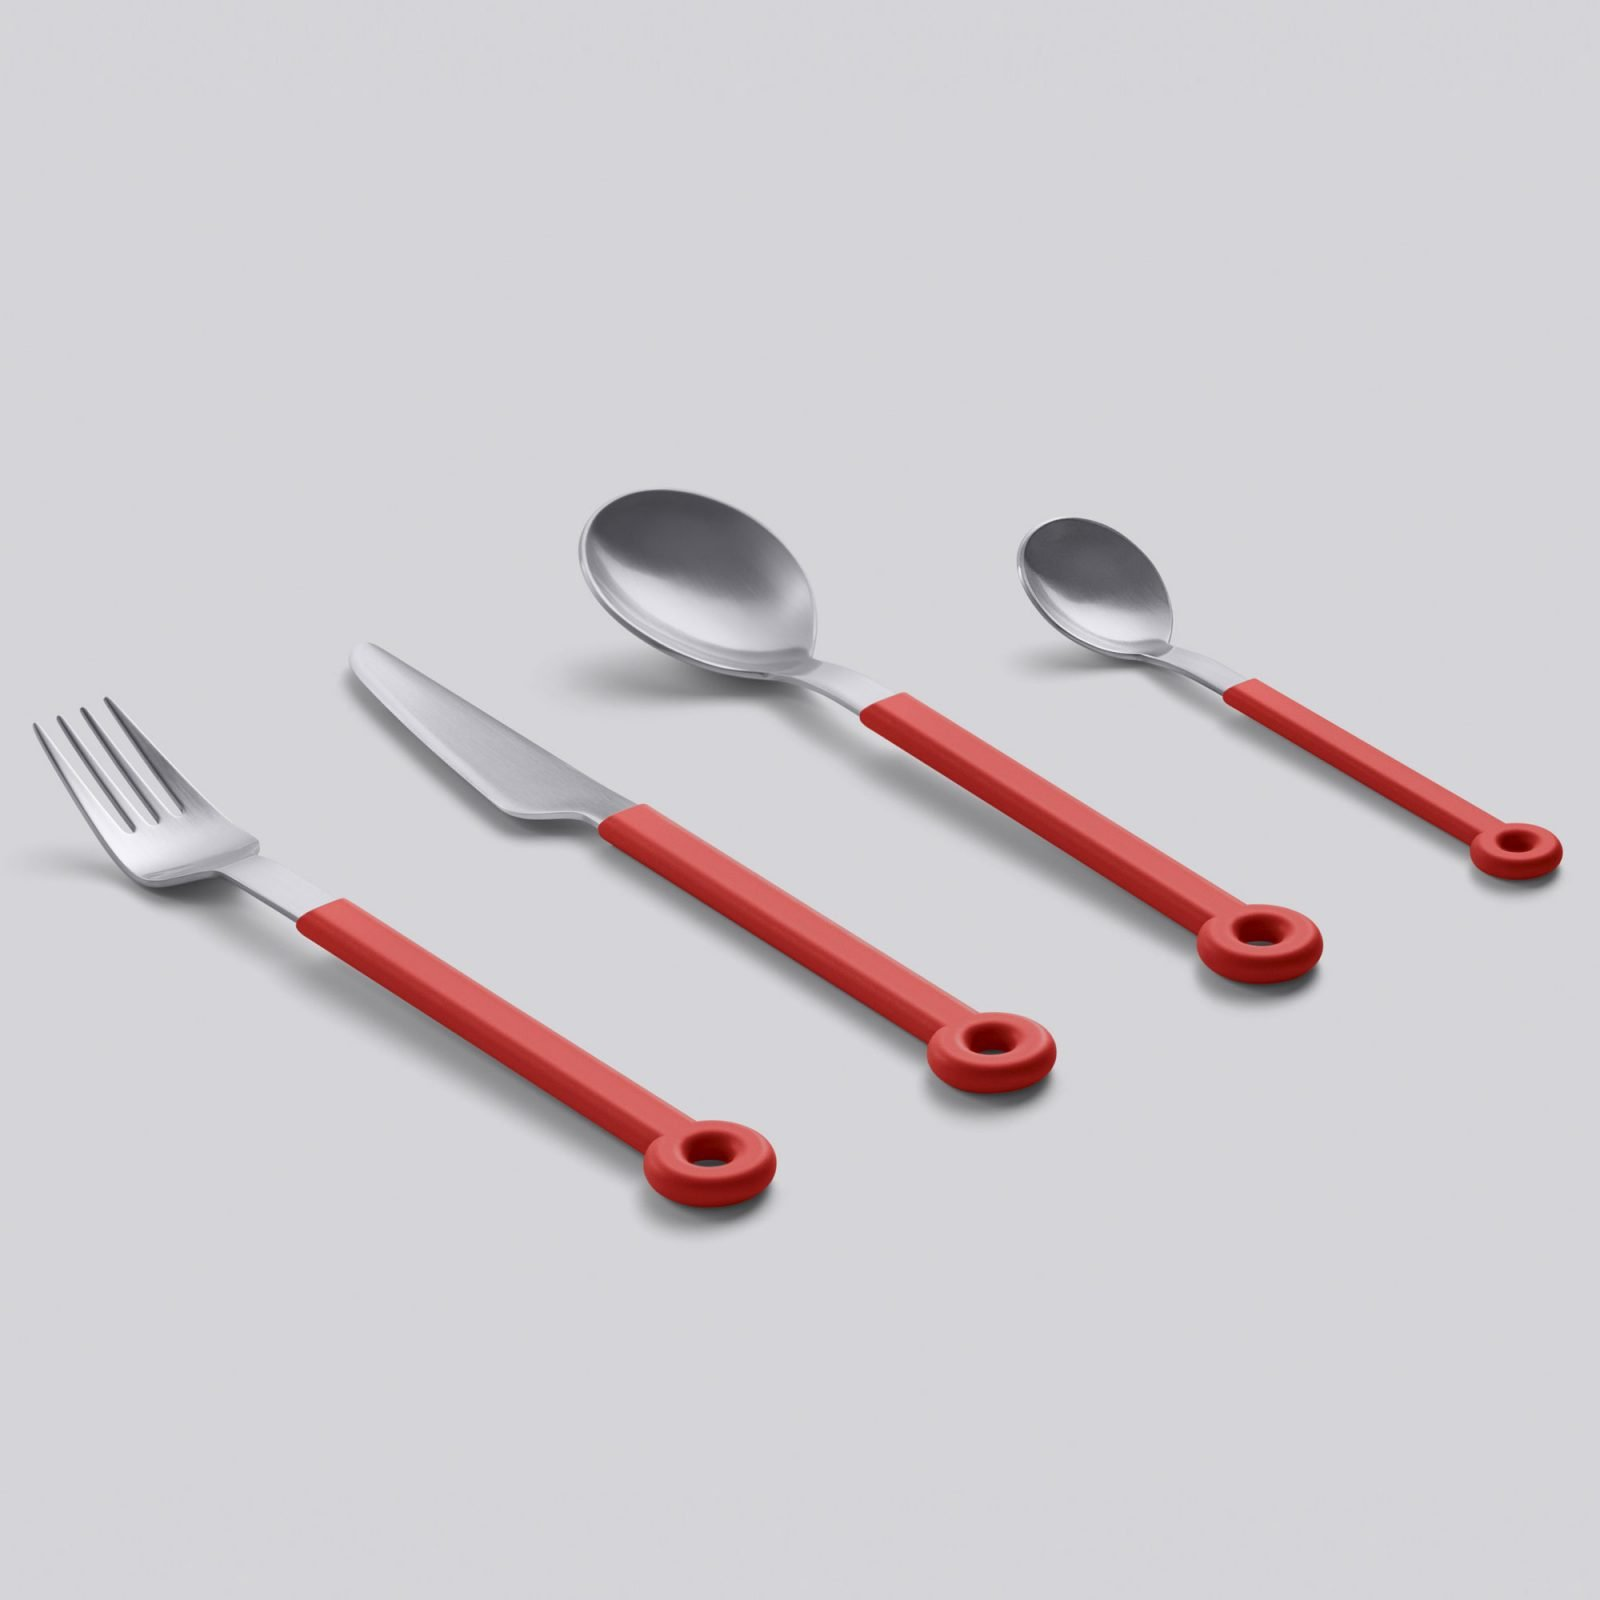 mono-ring-flatware-4-piece-set-red-3